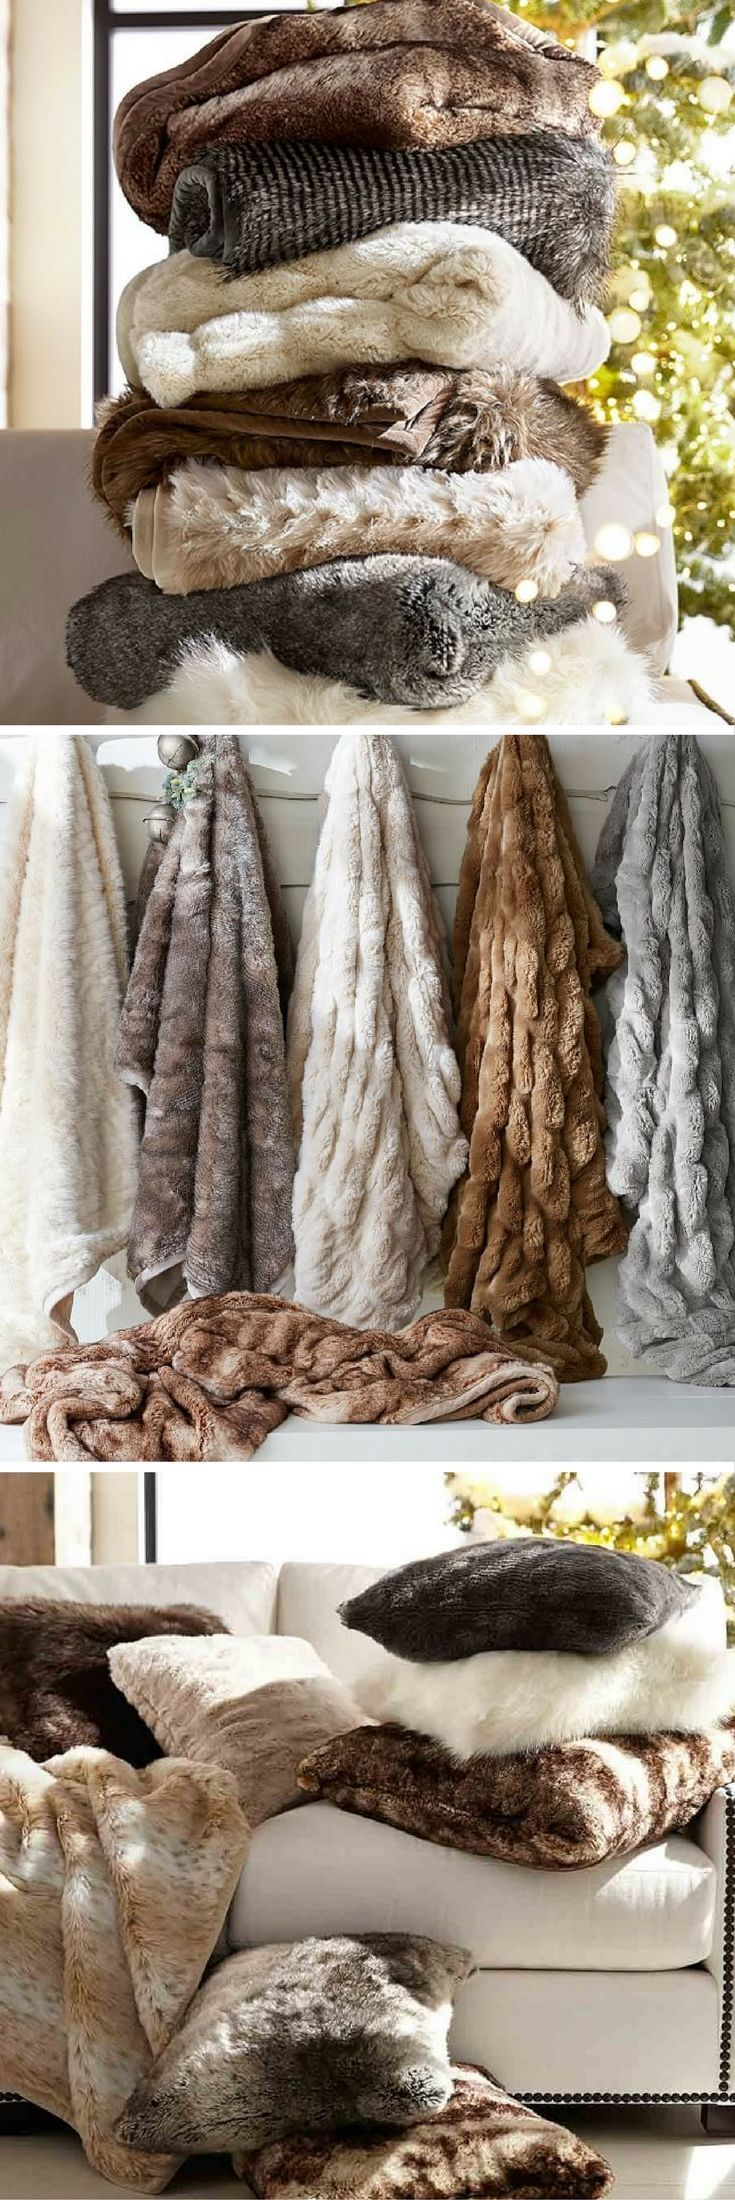 Faux Fur Throw   Throw Blanket   Warm Blanket   Christmas Present   Living Room Decor   Bedroom Decor   Home Accessories   Cozy   Machine Washable   Pottery Barn   Ad